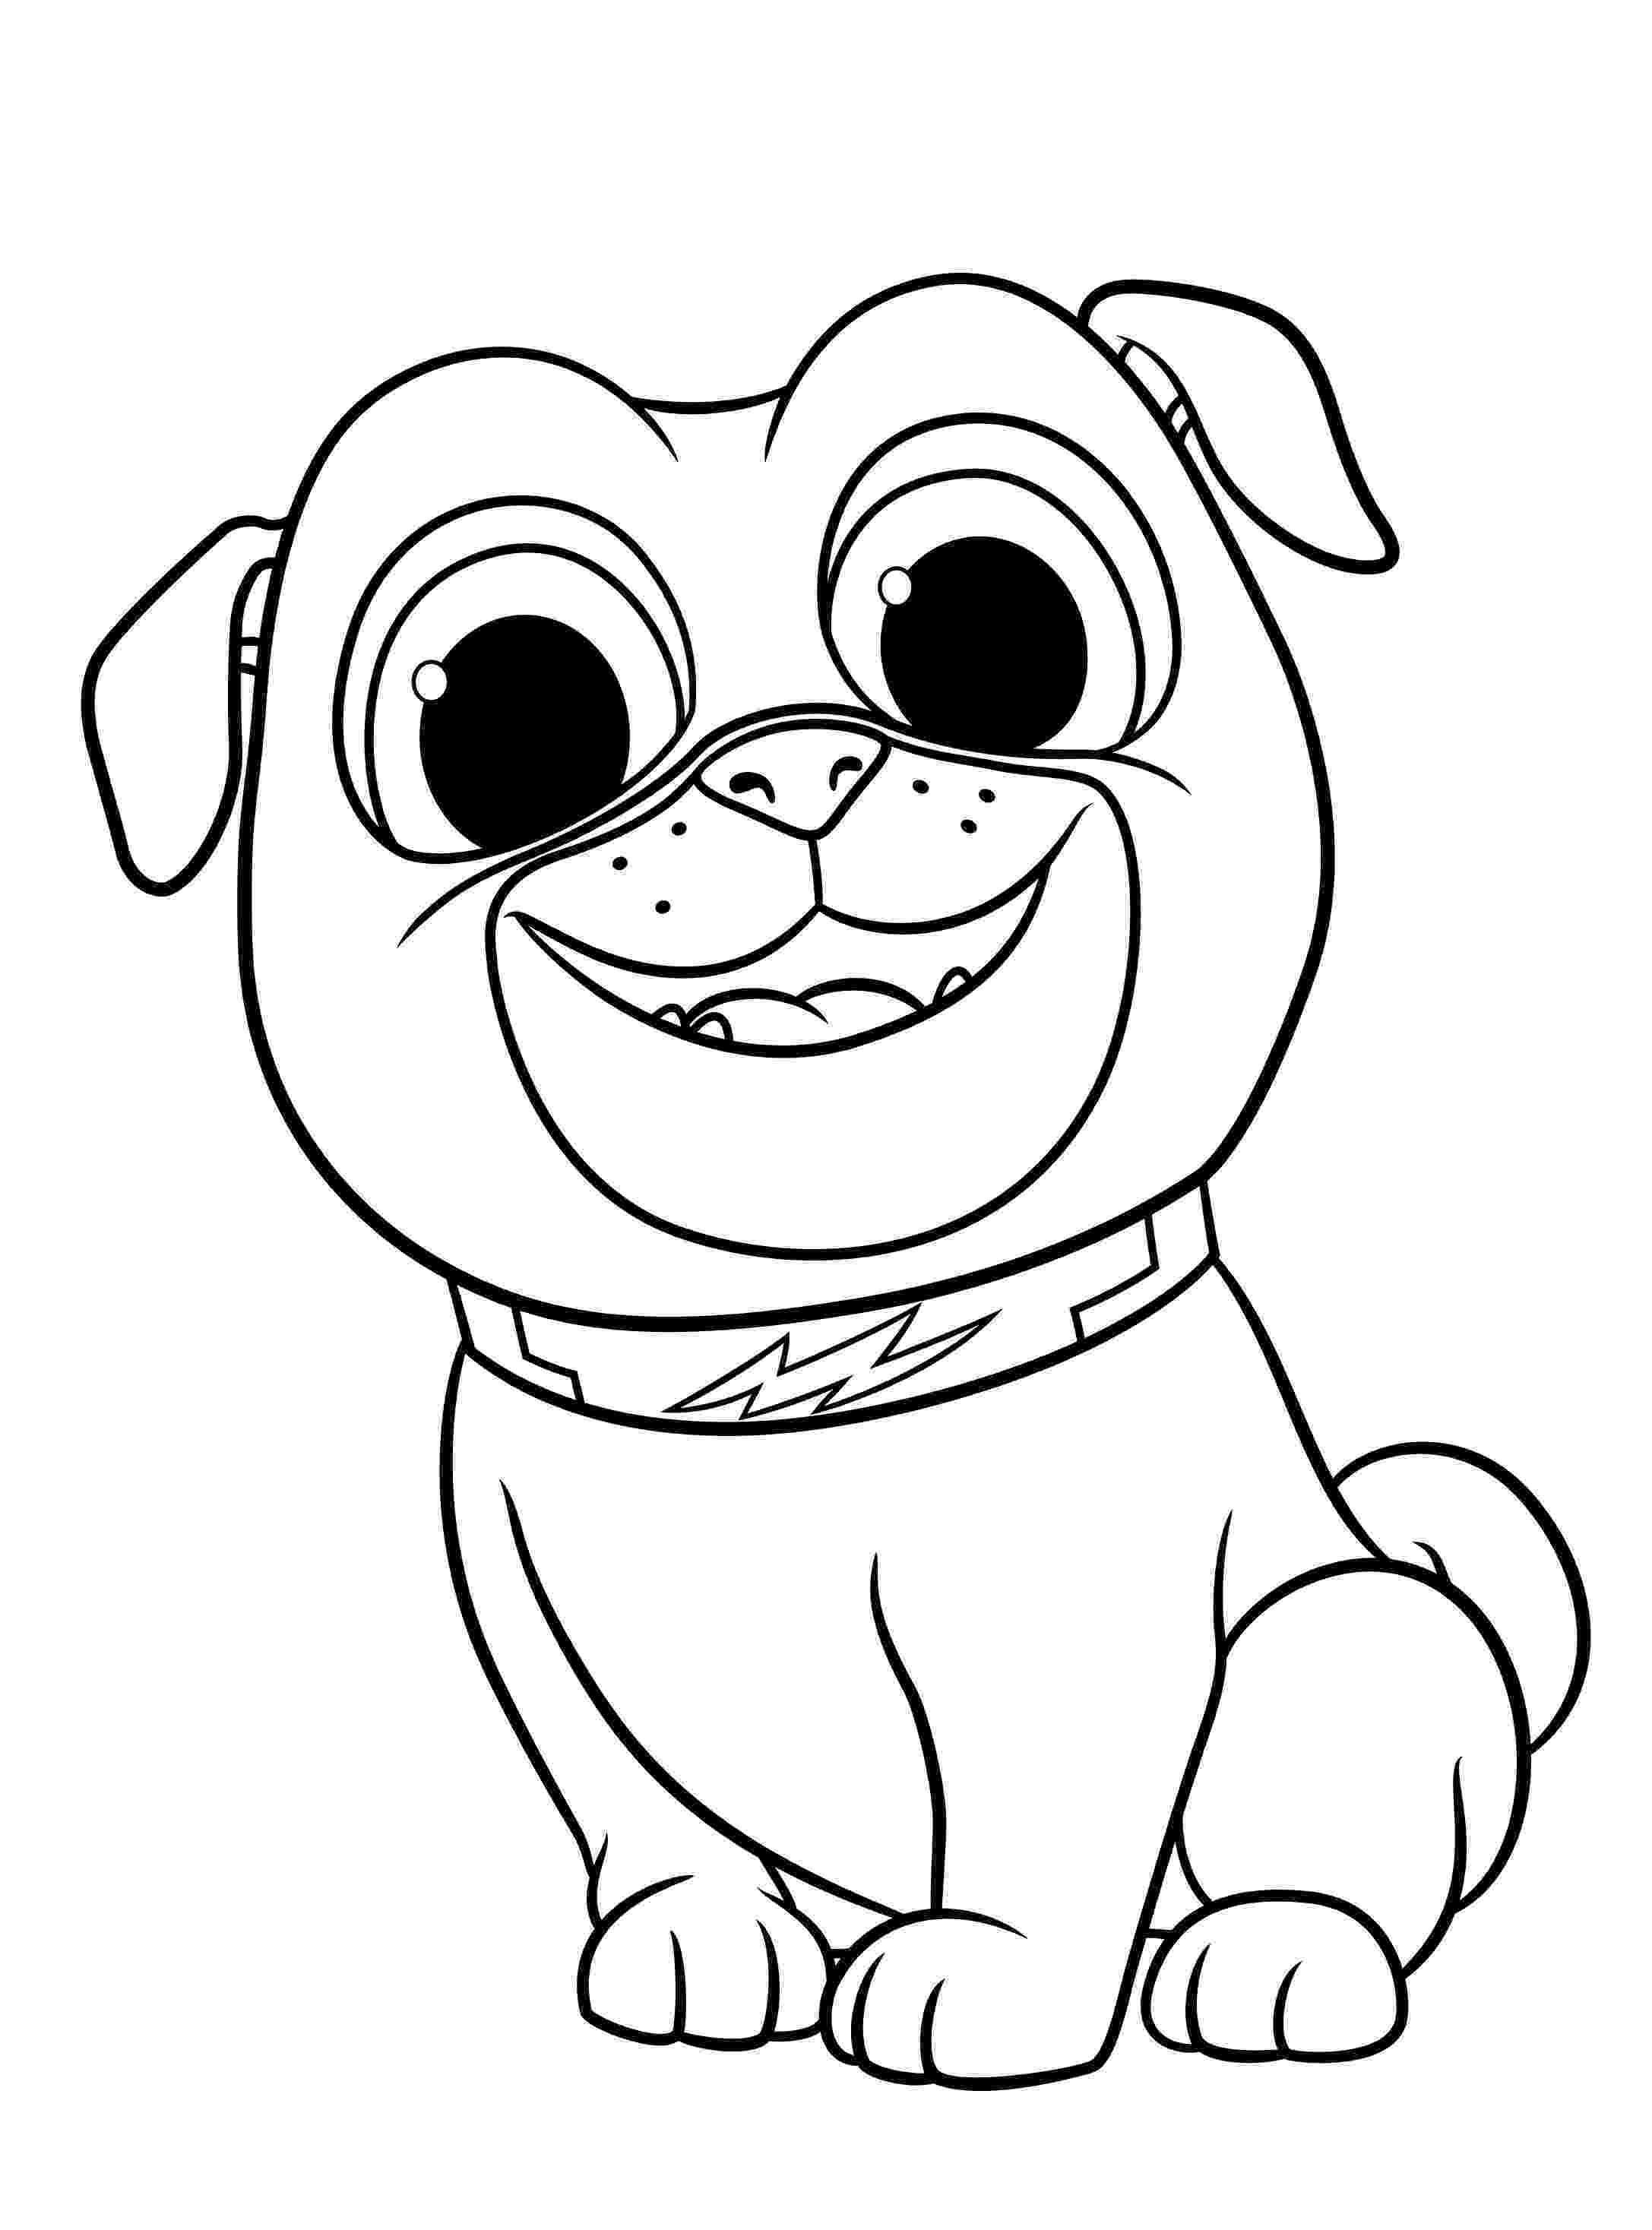 free dog coloring pages free printable dog coloring pages for kids coloring free dog pages